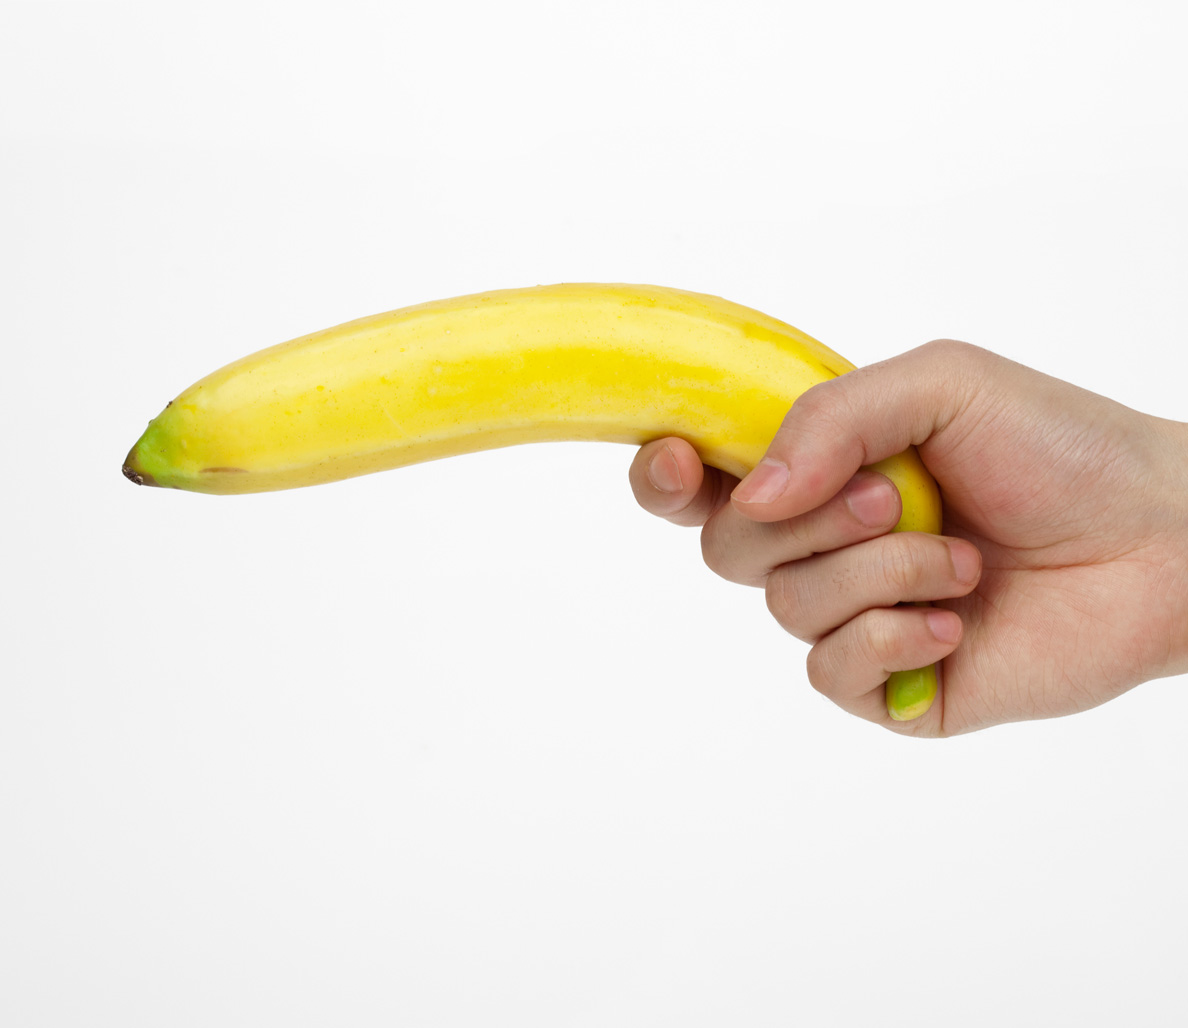 Is it really possible to make your penis bigger